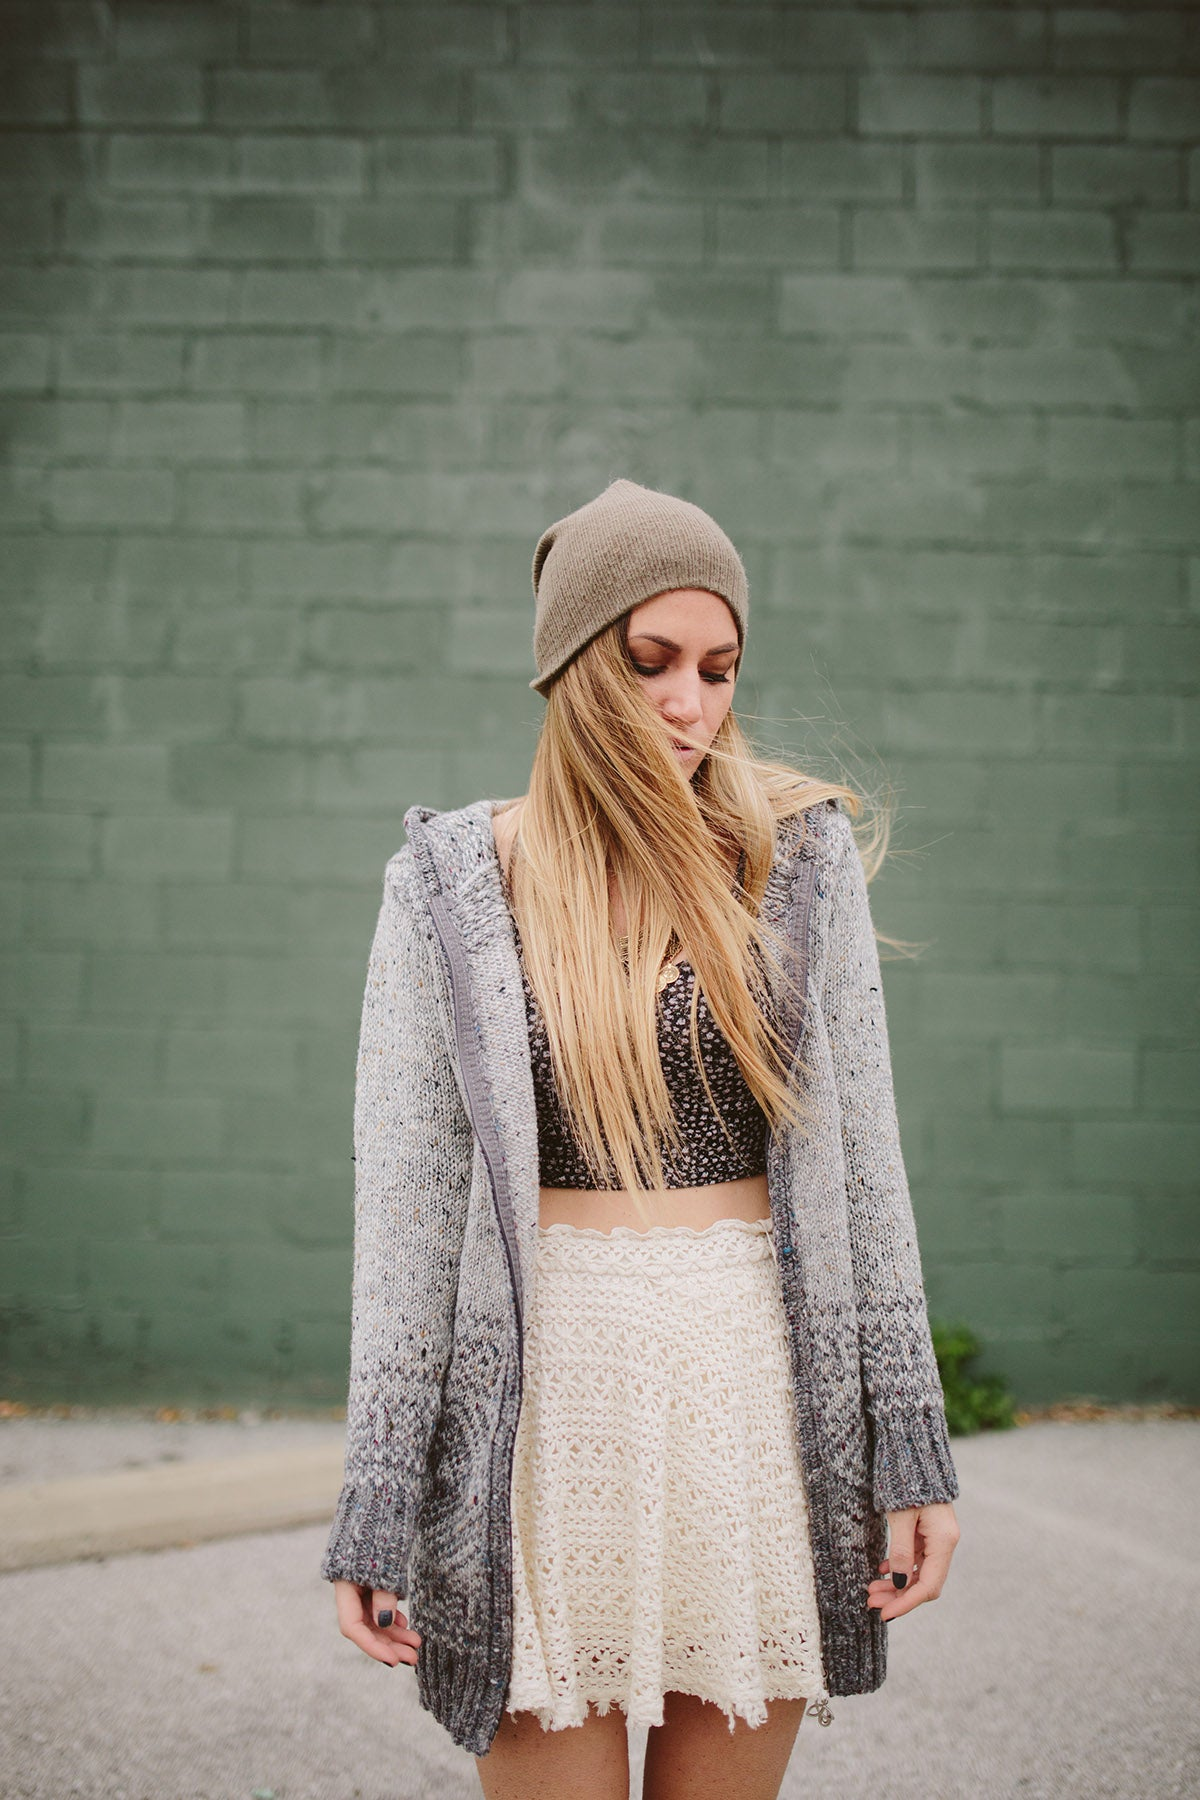 3 Ways to Style a Hooded Sweater: Mix & Match #knitwear #style #fashion